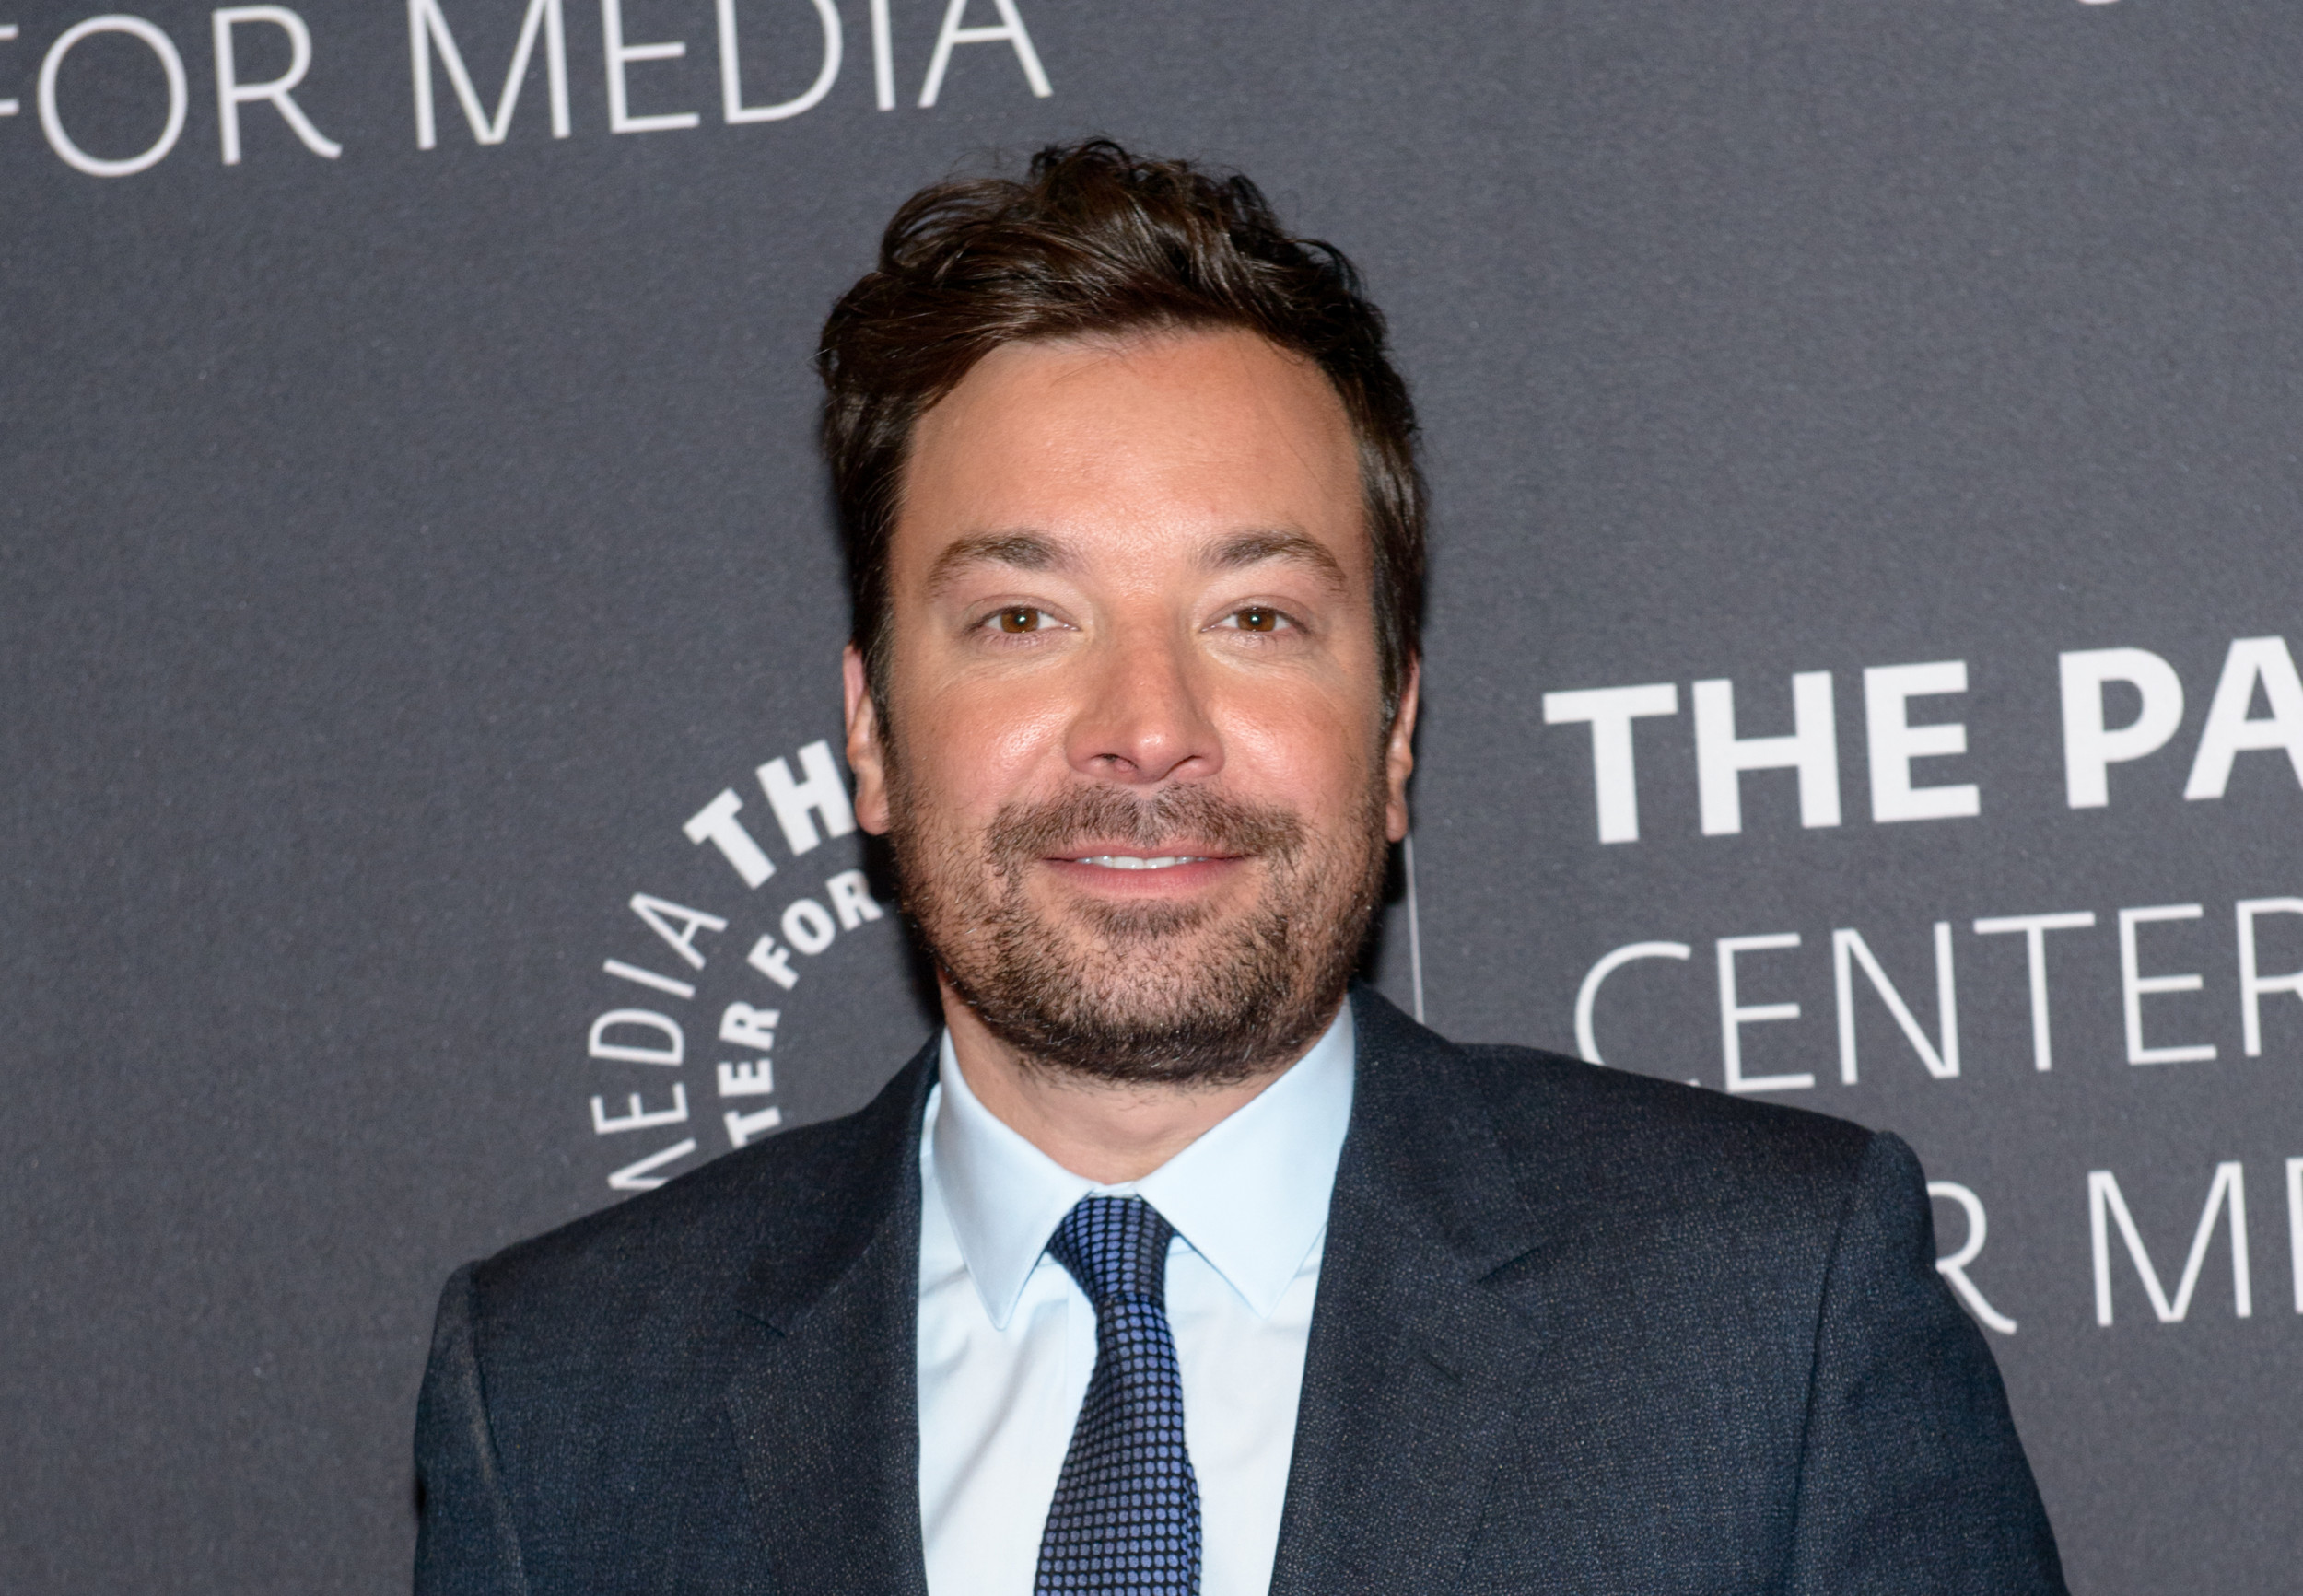 Jimmy Fallon Mocks Sidney Powell's Firing From Trump's Lawful Team For 'Being Too Crazy'